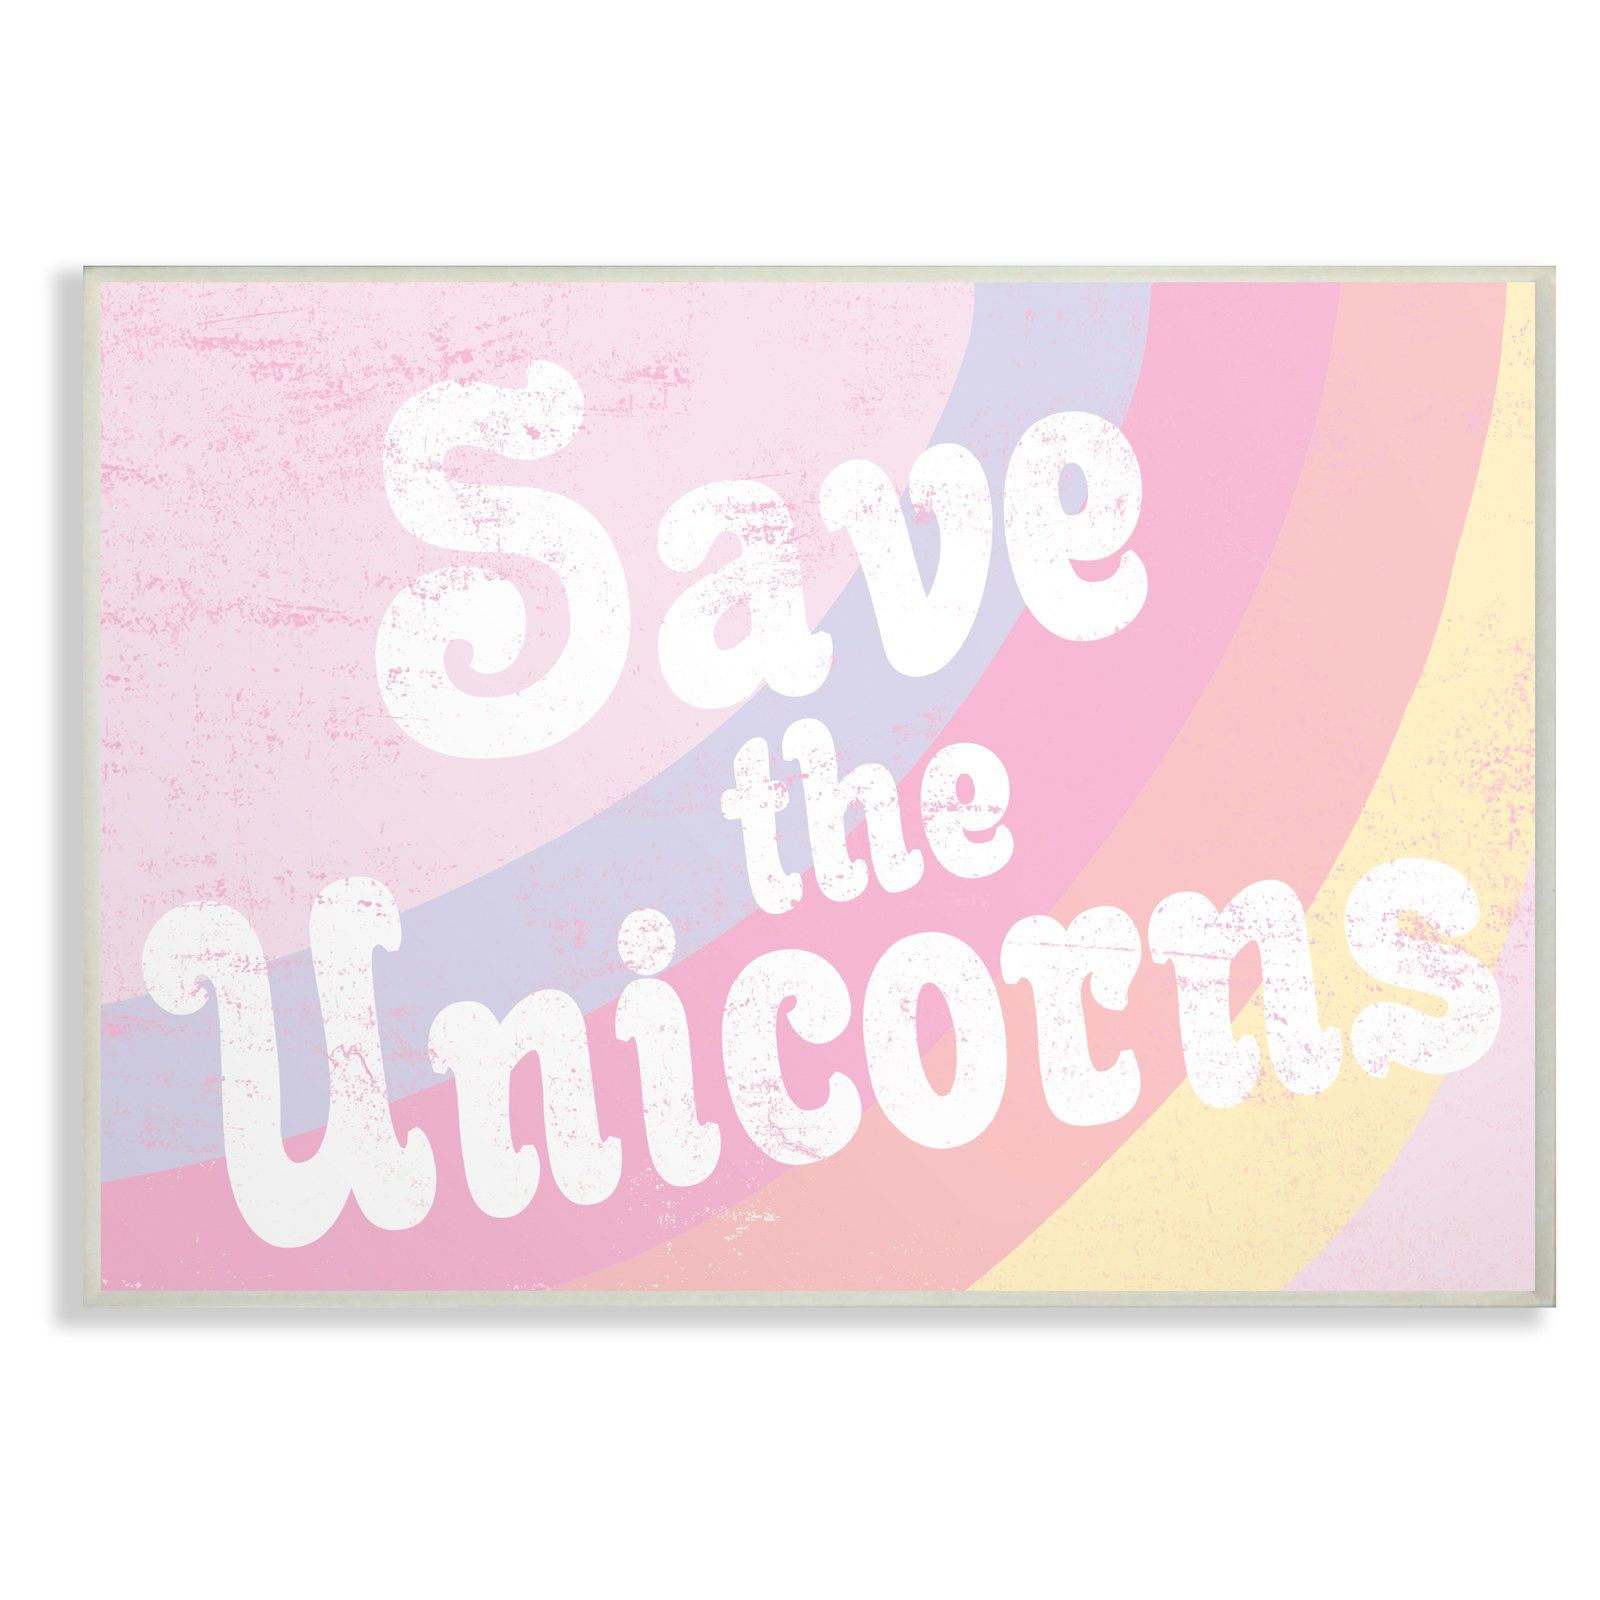 The Stupell Home Decor Collection The Kids Room By Stupell Save The Unicorns Wall Art Wood Plaque In 2020 Unicorn Wall Art Wall Plaques Baby Wall Art